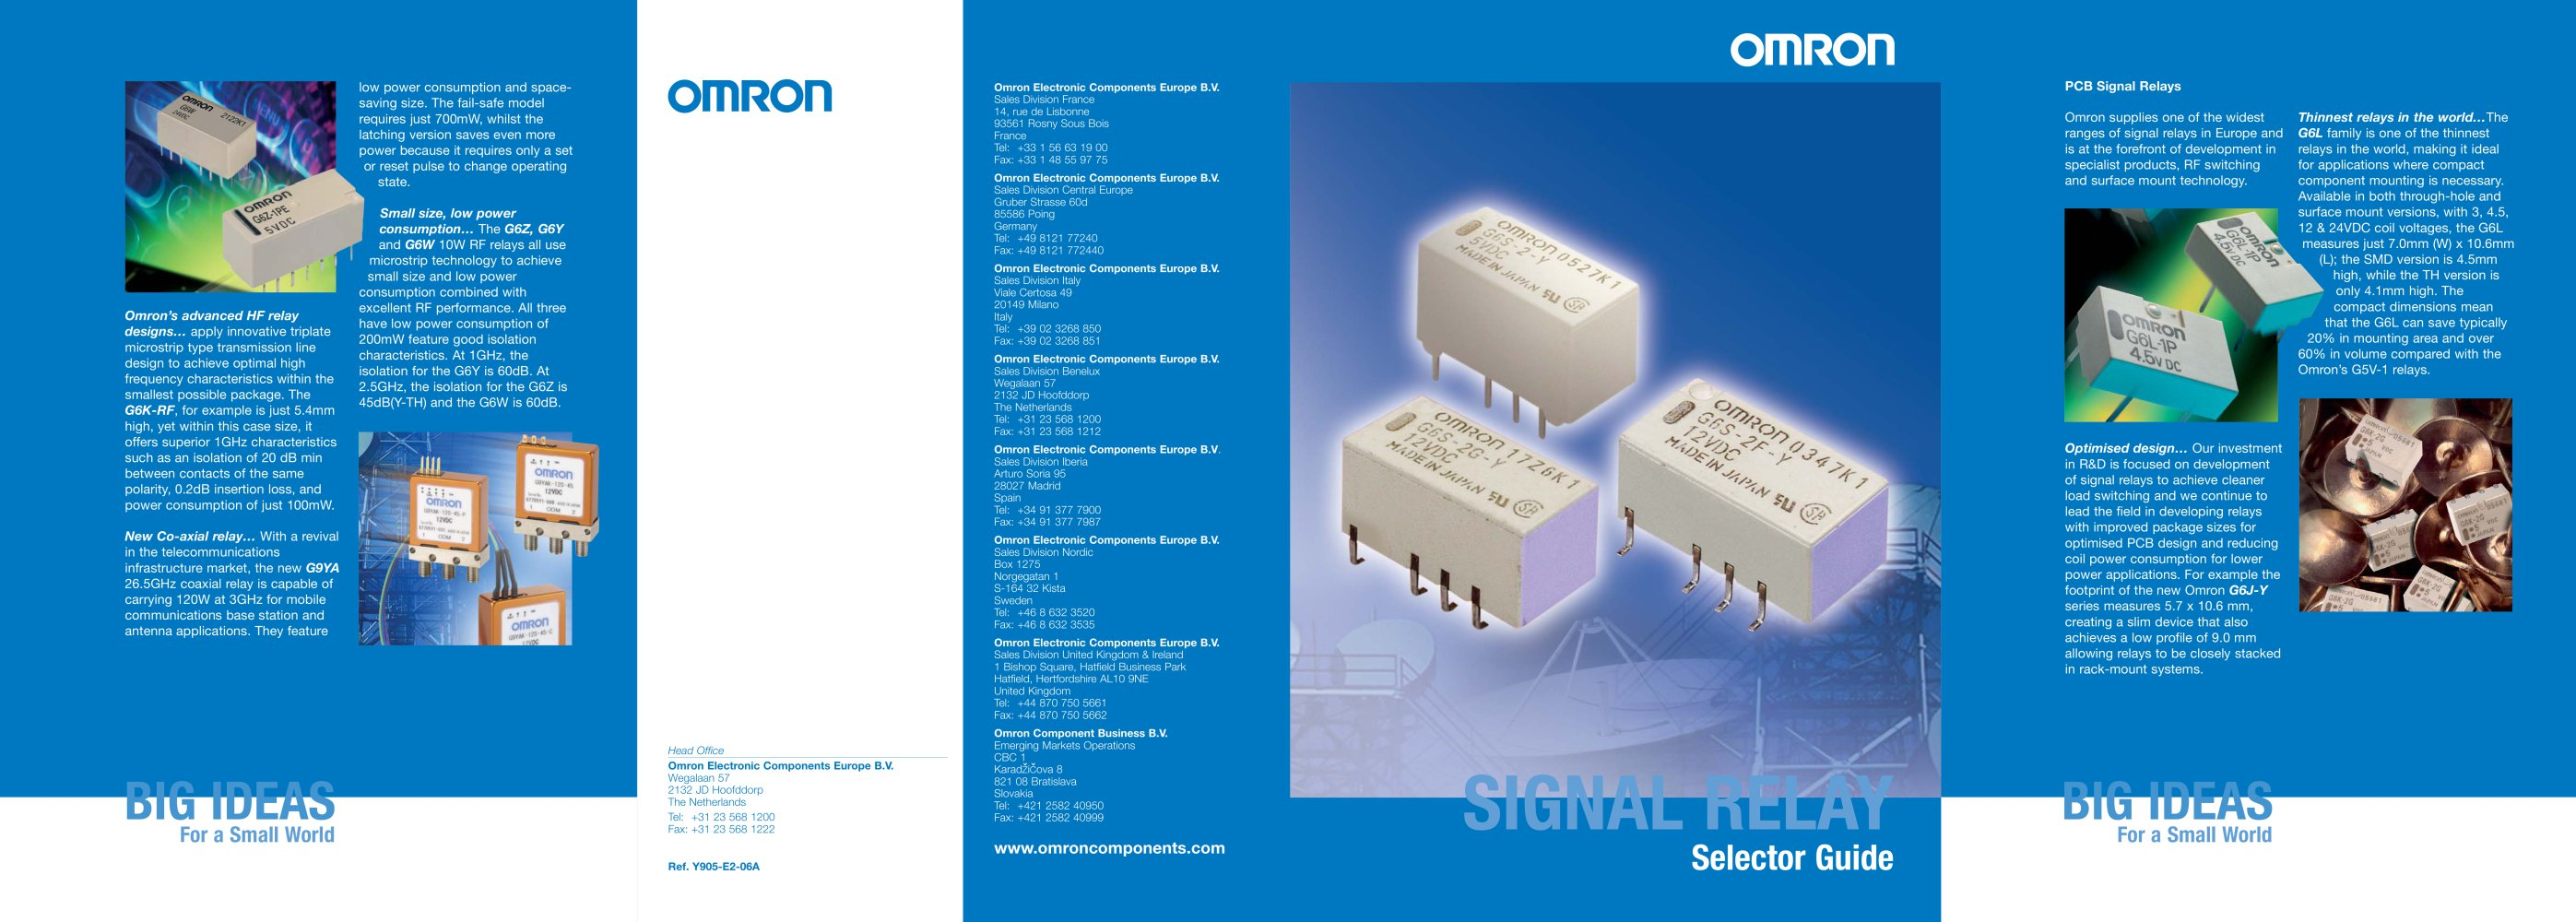 Signal Relay Product Brochure Omron Electrical Components Pdf Use 1 2 Pages